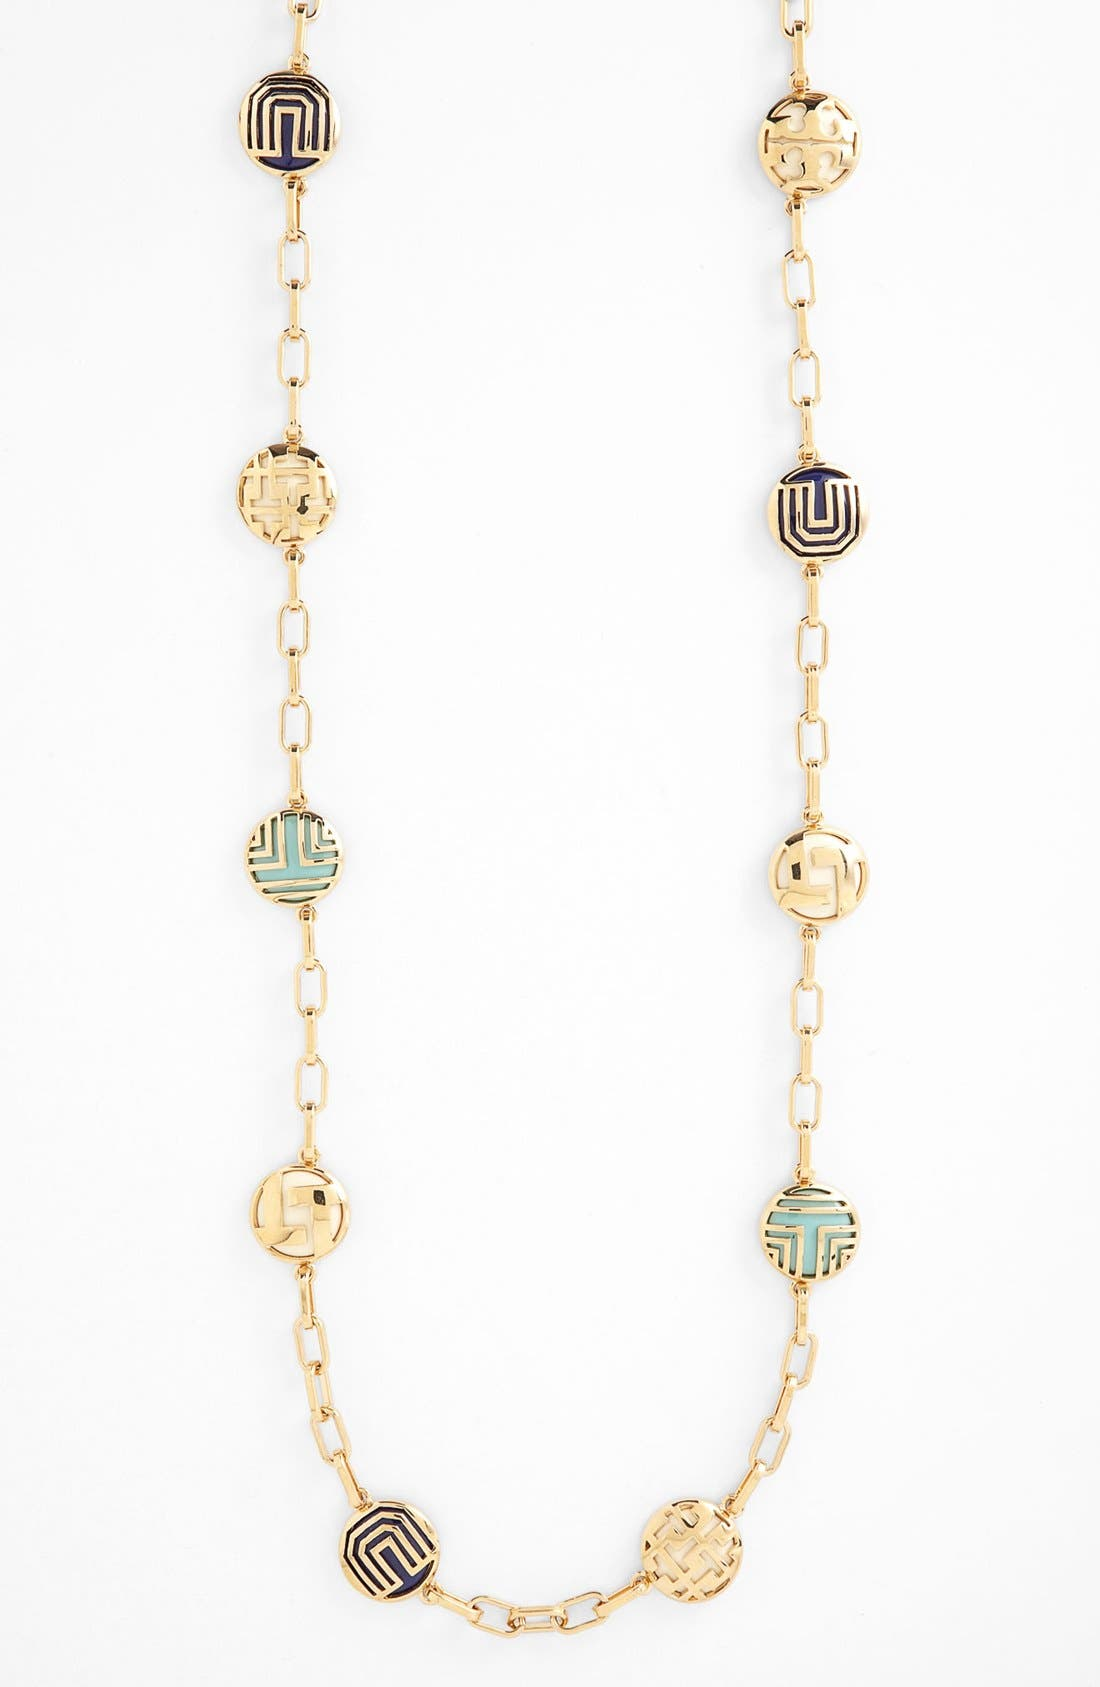 Alternate Image 1 Selected - Tory Burch 'Color Frete' Long Station Necklace